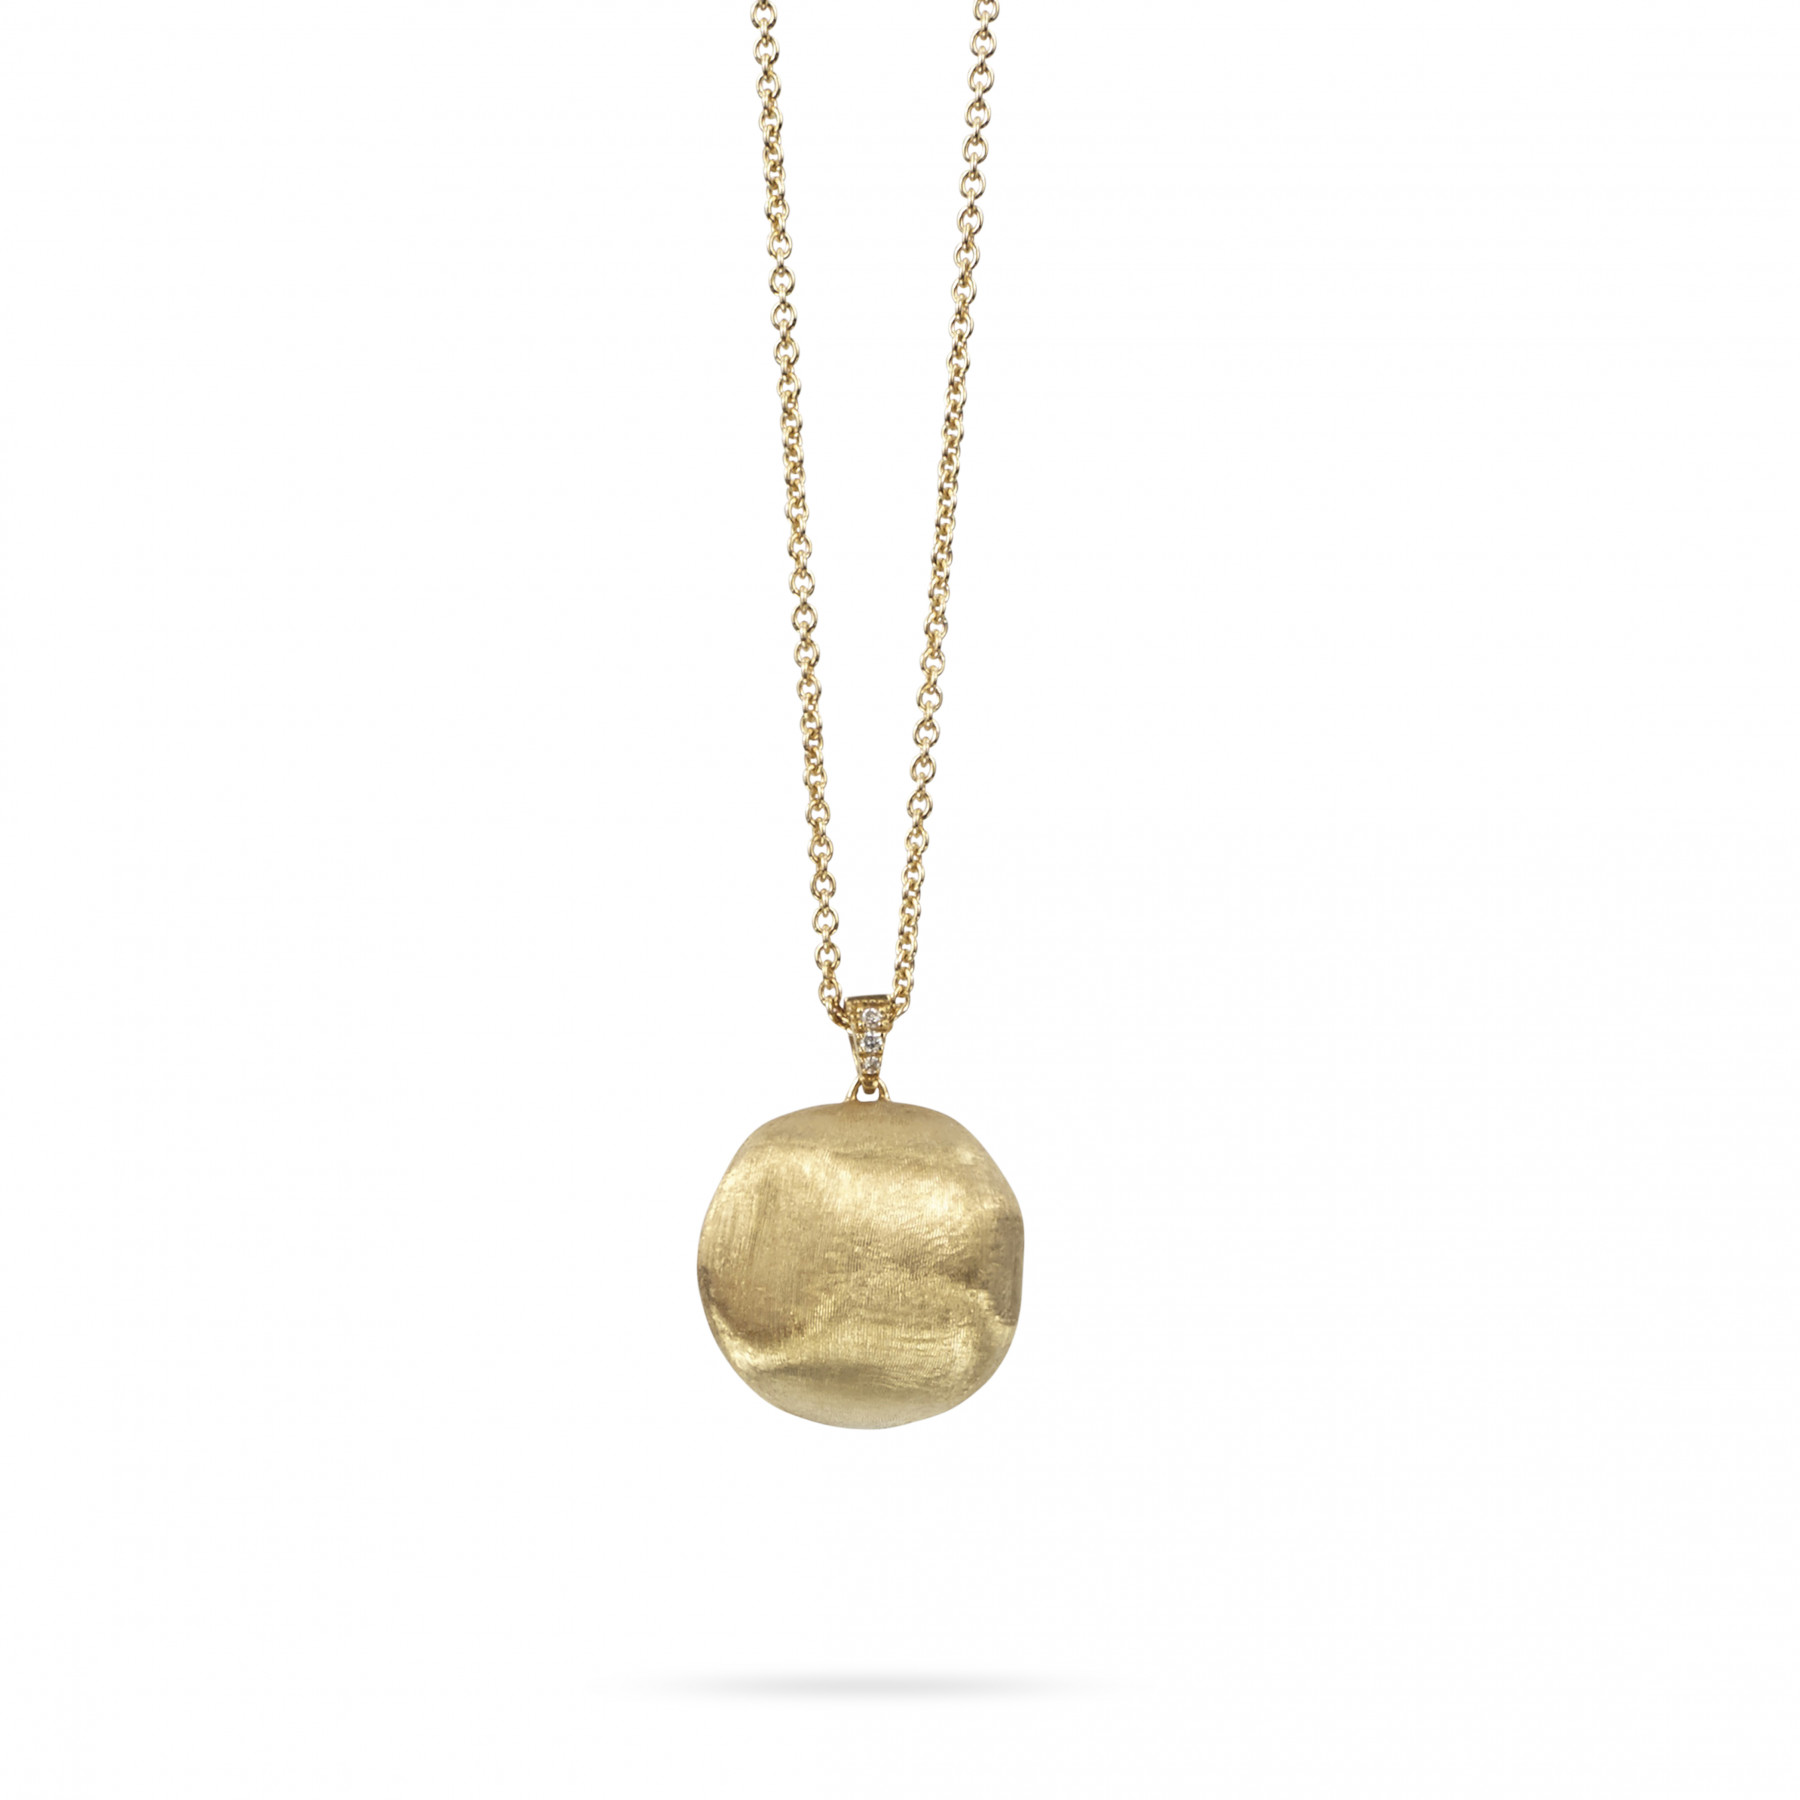 Marco Bicego Africa Yellow Gold Ball Pendant Necklace